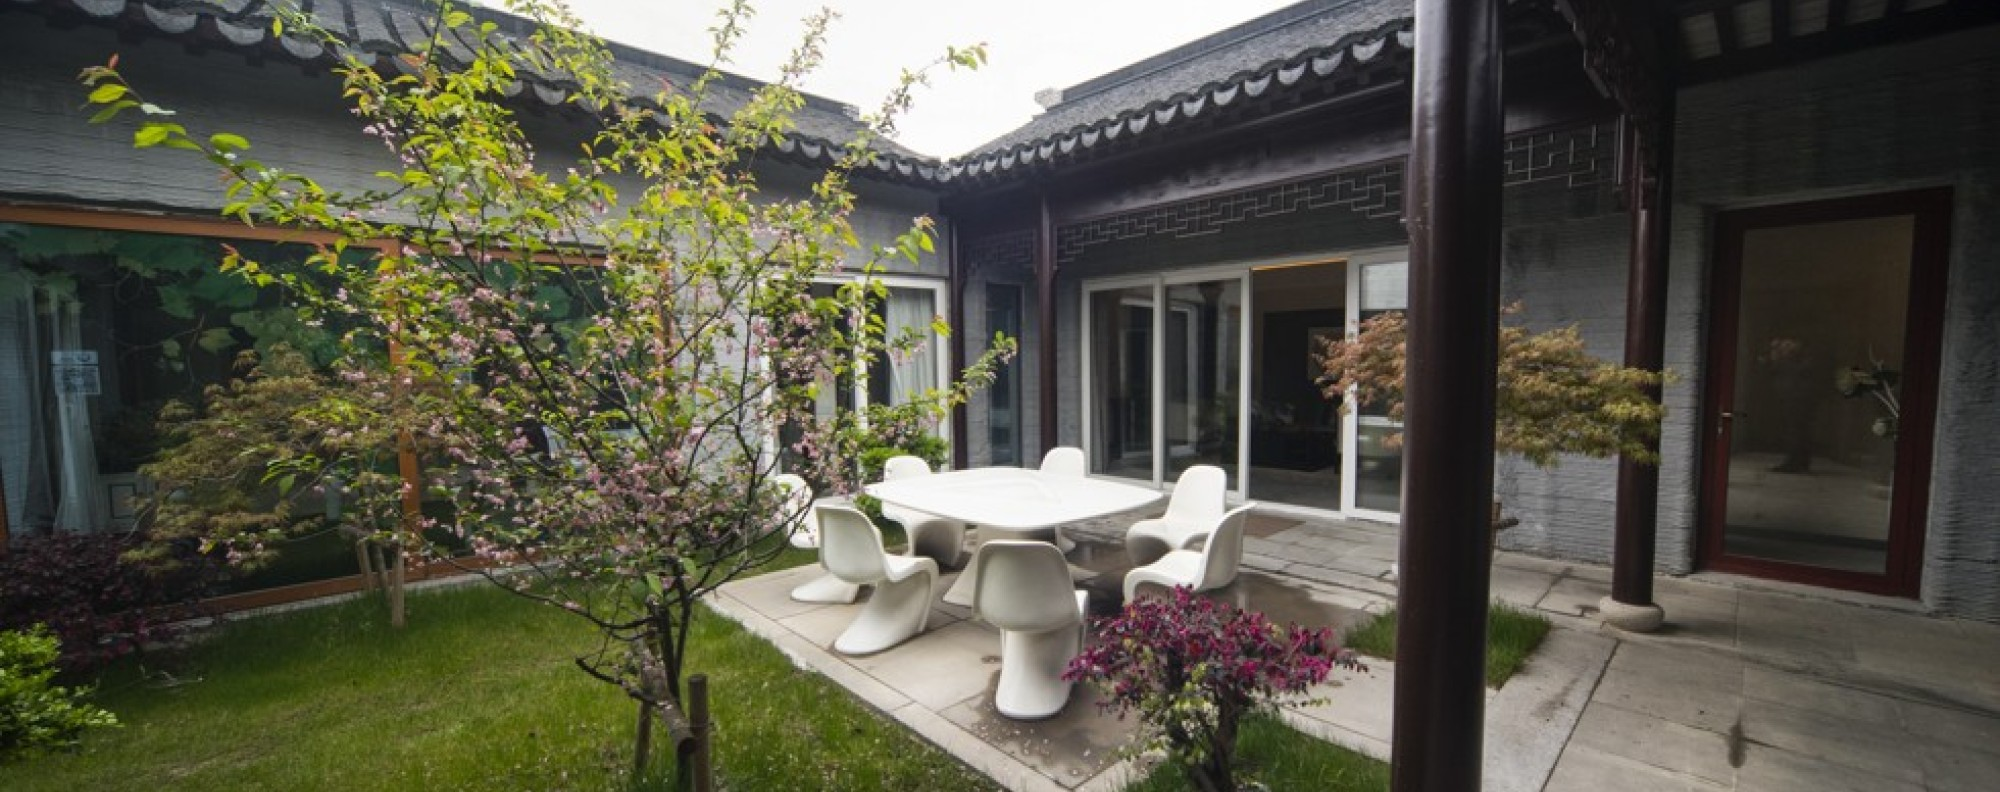 A 3D Printed Chinese Style Courtyard Home Built By WinSun.